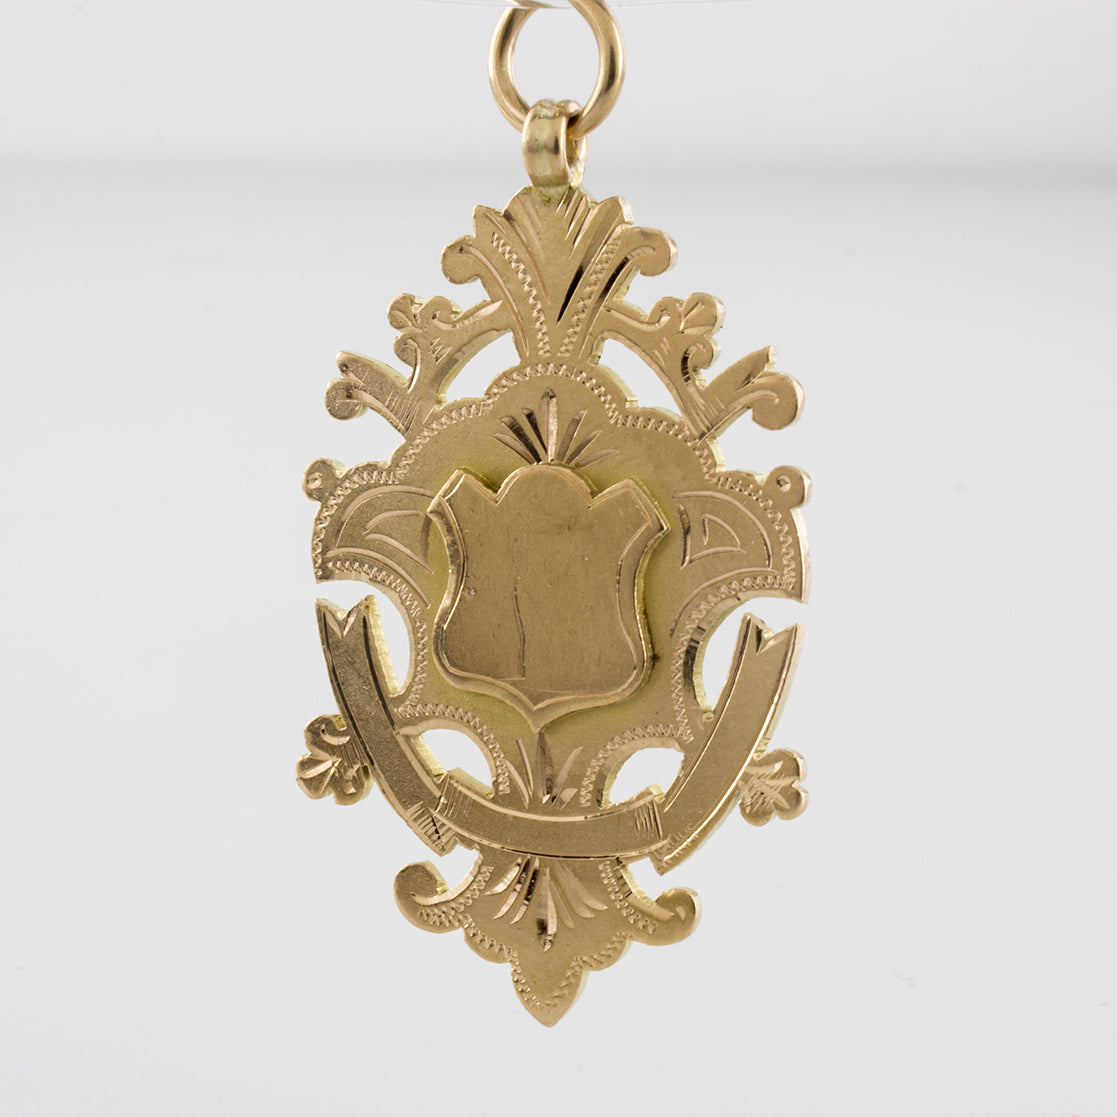 Edwardian Era Badge Pendant